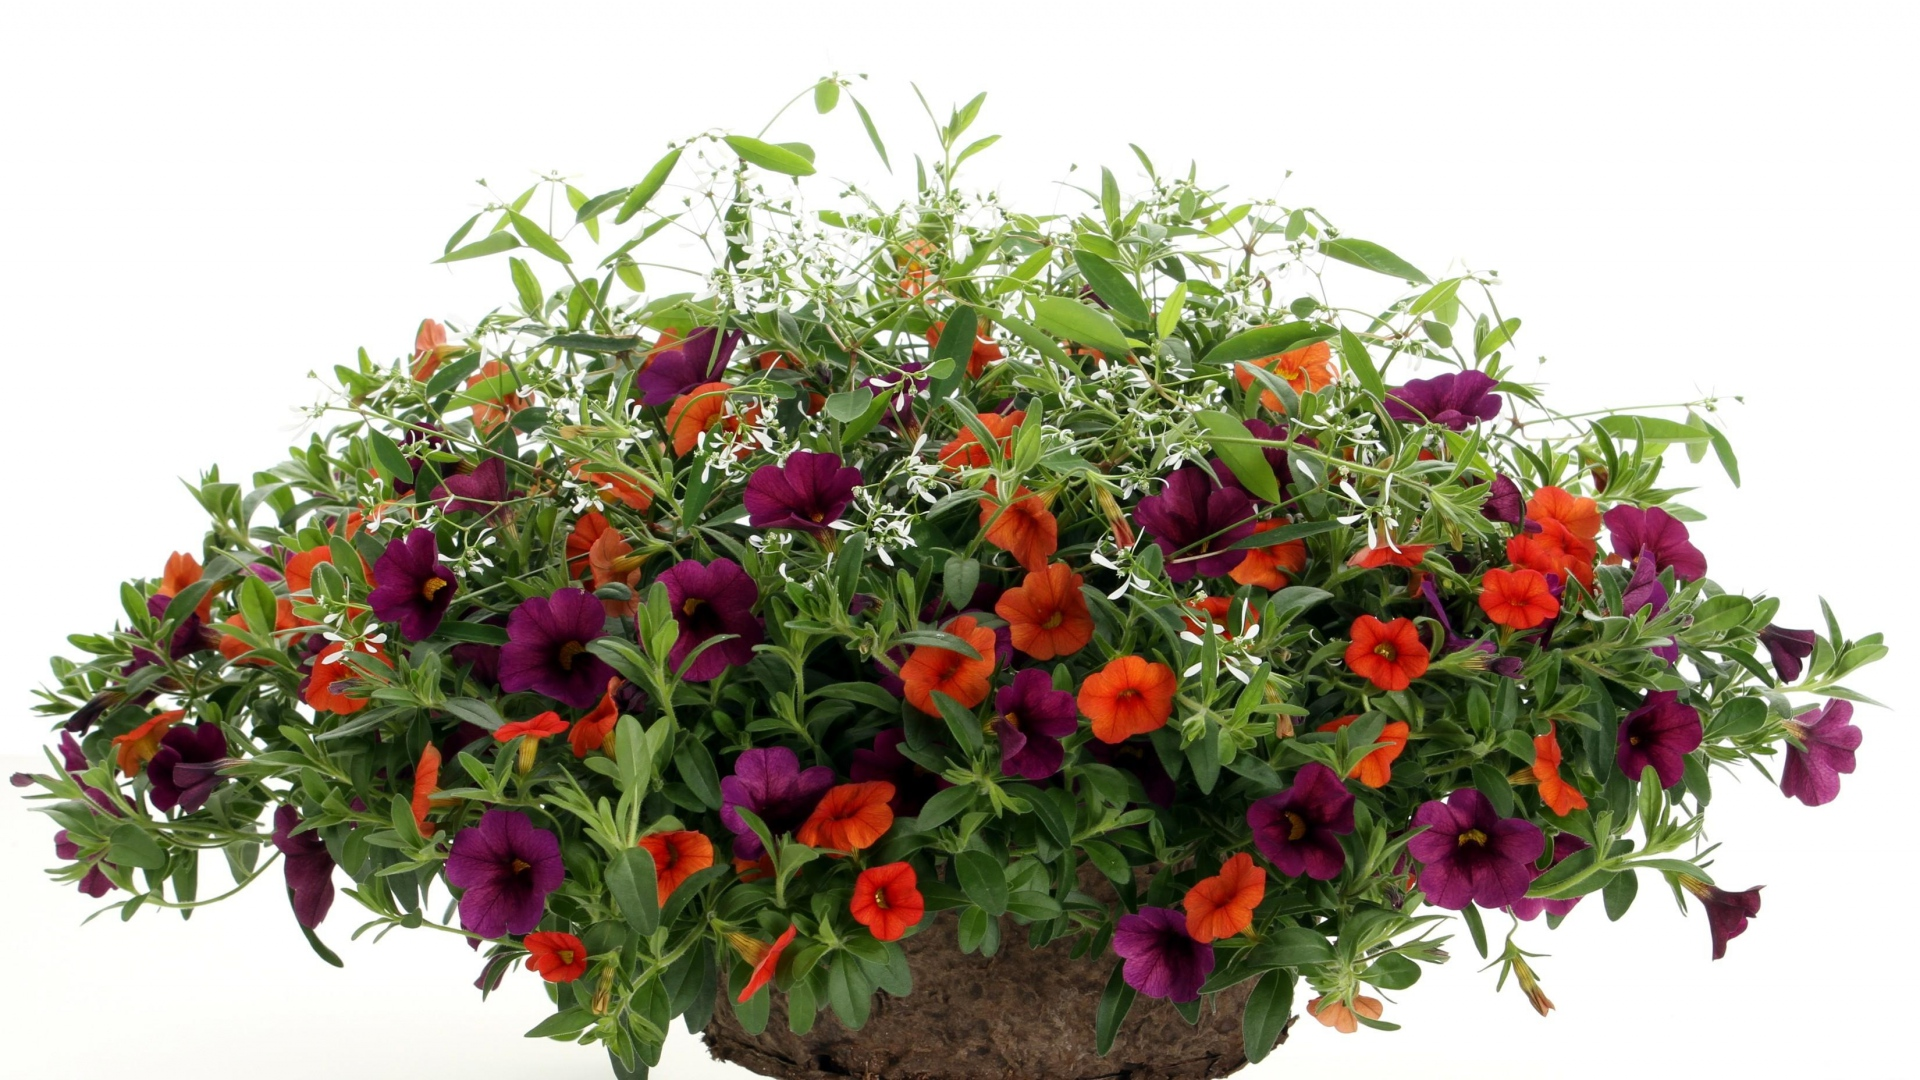 1920x1080-petunia-bright-flowers-pots-white-background-wallpaper-wpc9001050